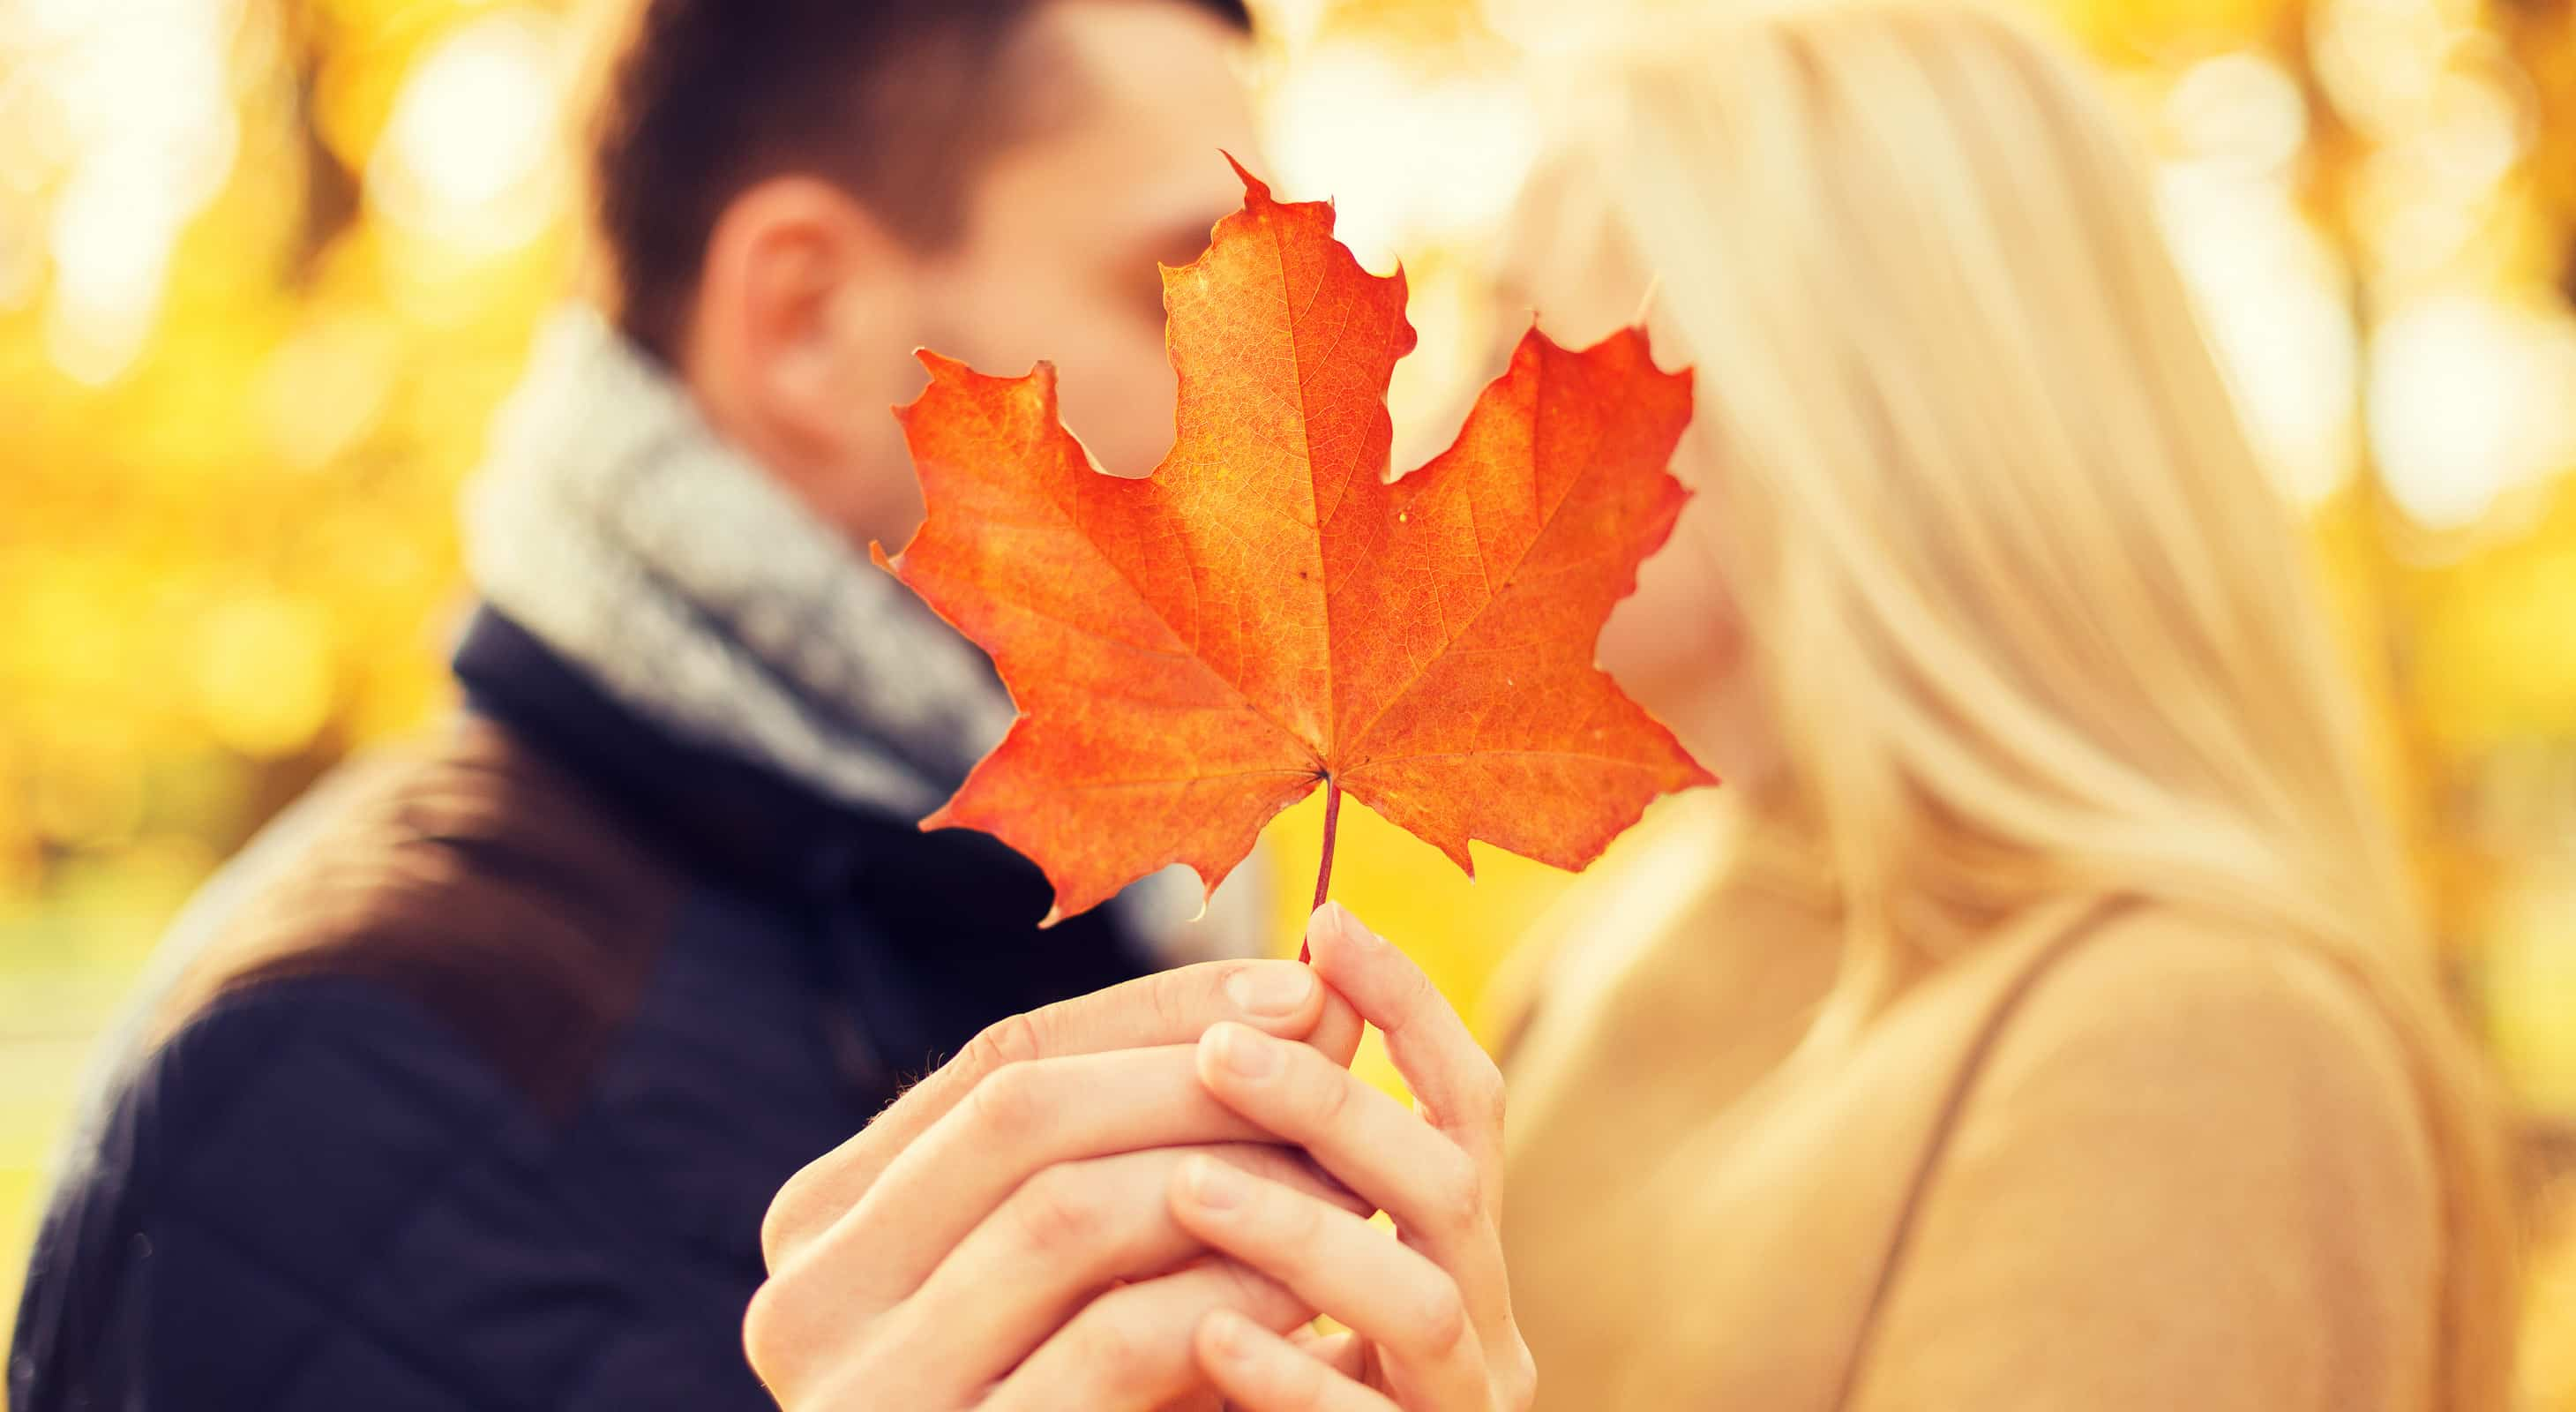 A couple holding a orange leaf in fall